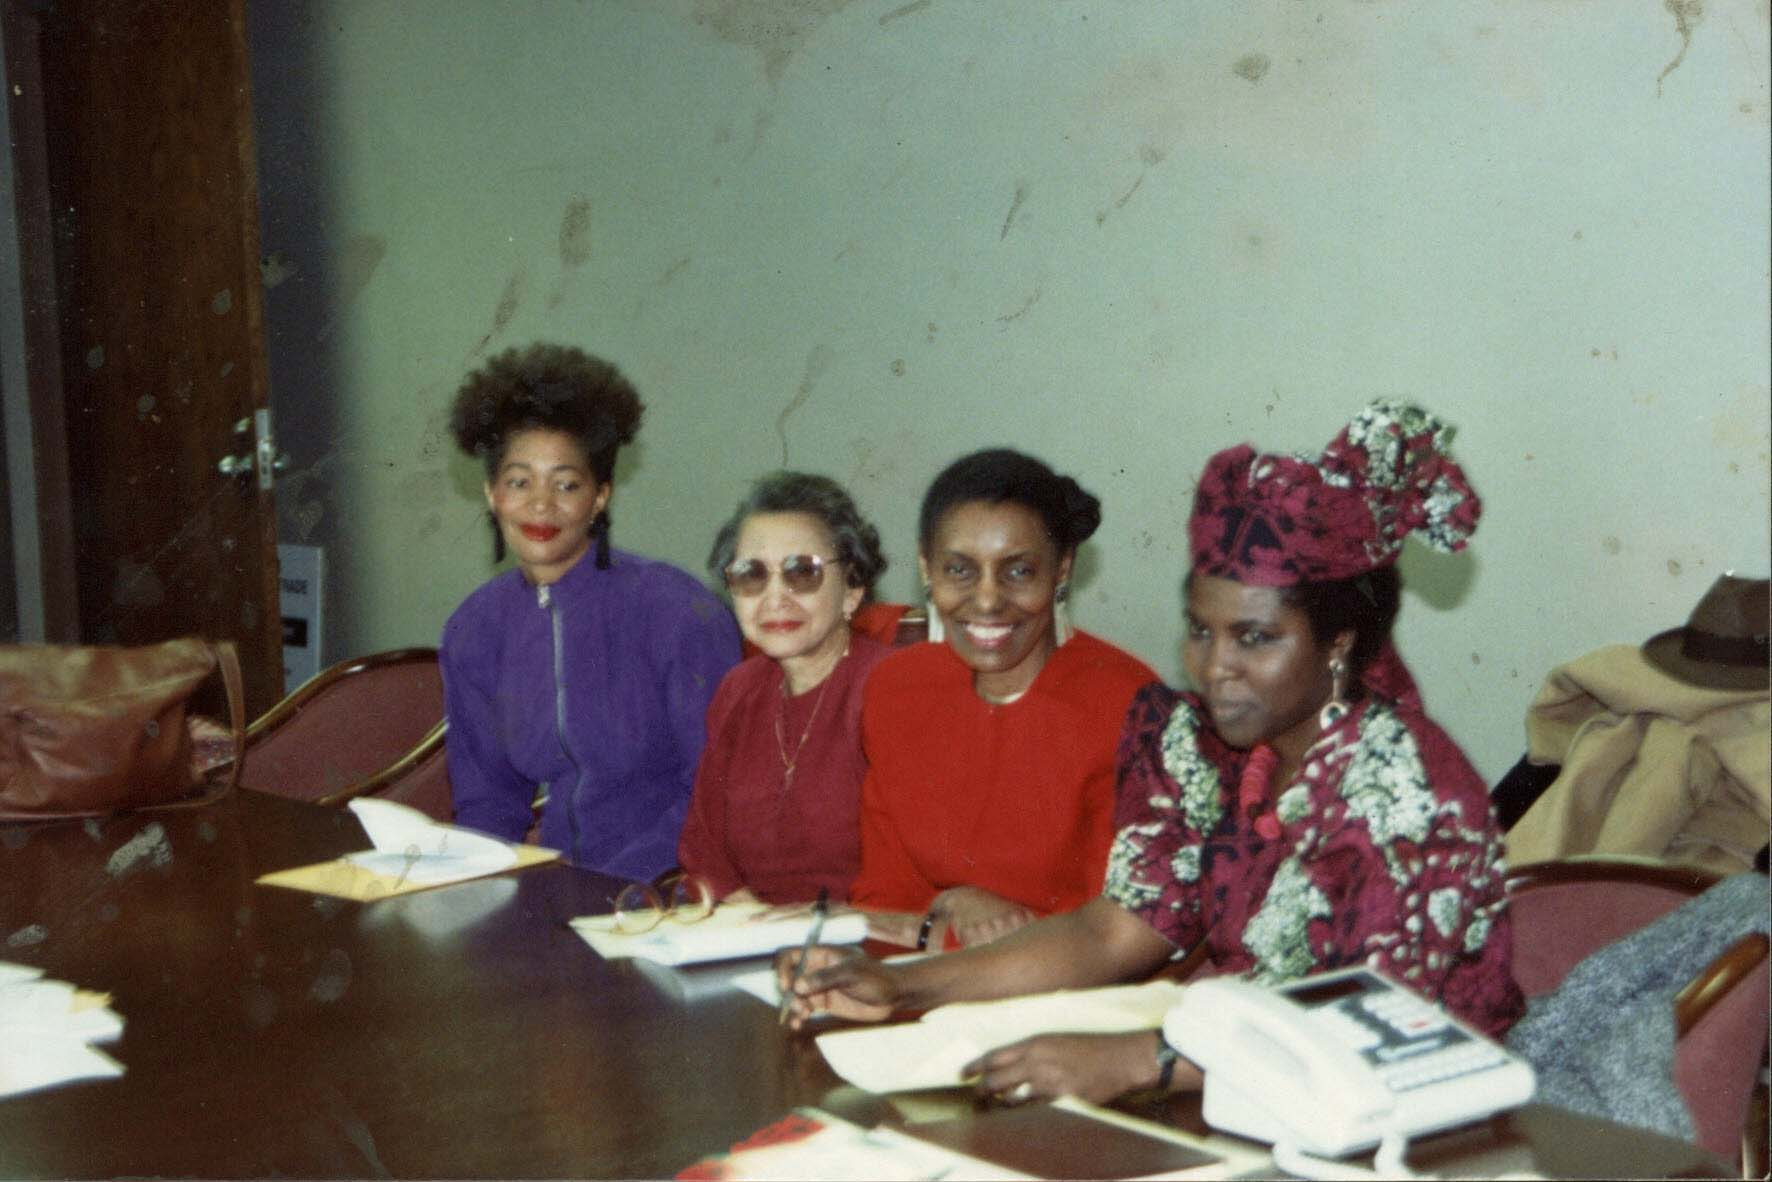 TESS ONWUEME FEATURED WITH WRITERS TERRY MCMILLAN, NAOIMI LONMAGETT, GLORIA HOUSE, Detriot, 1990